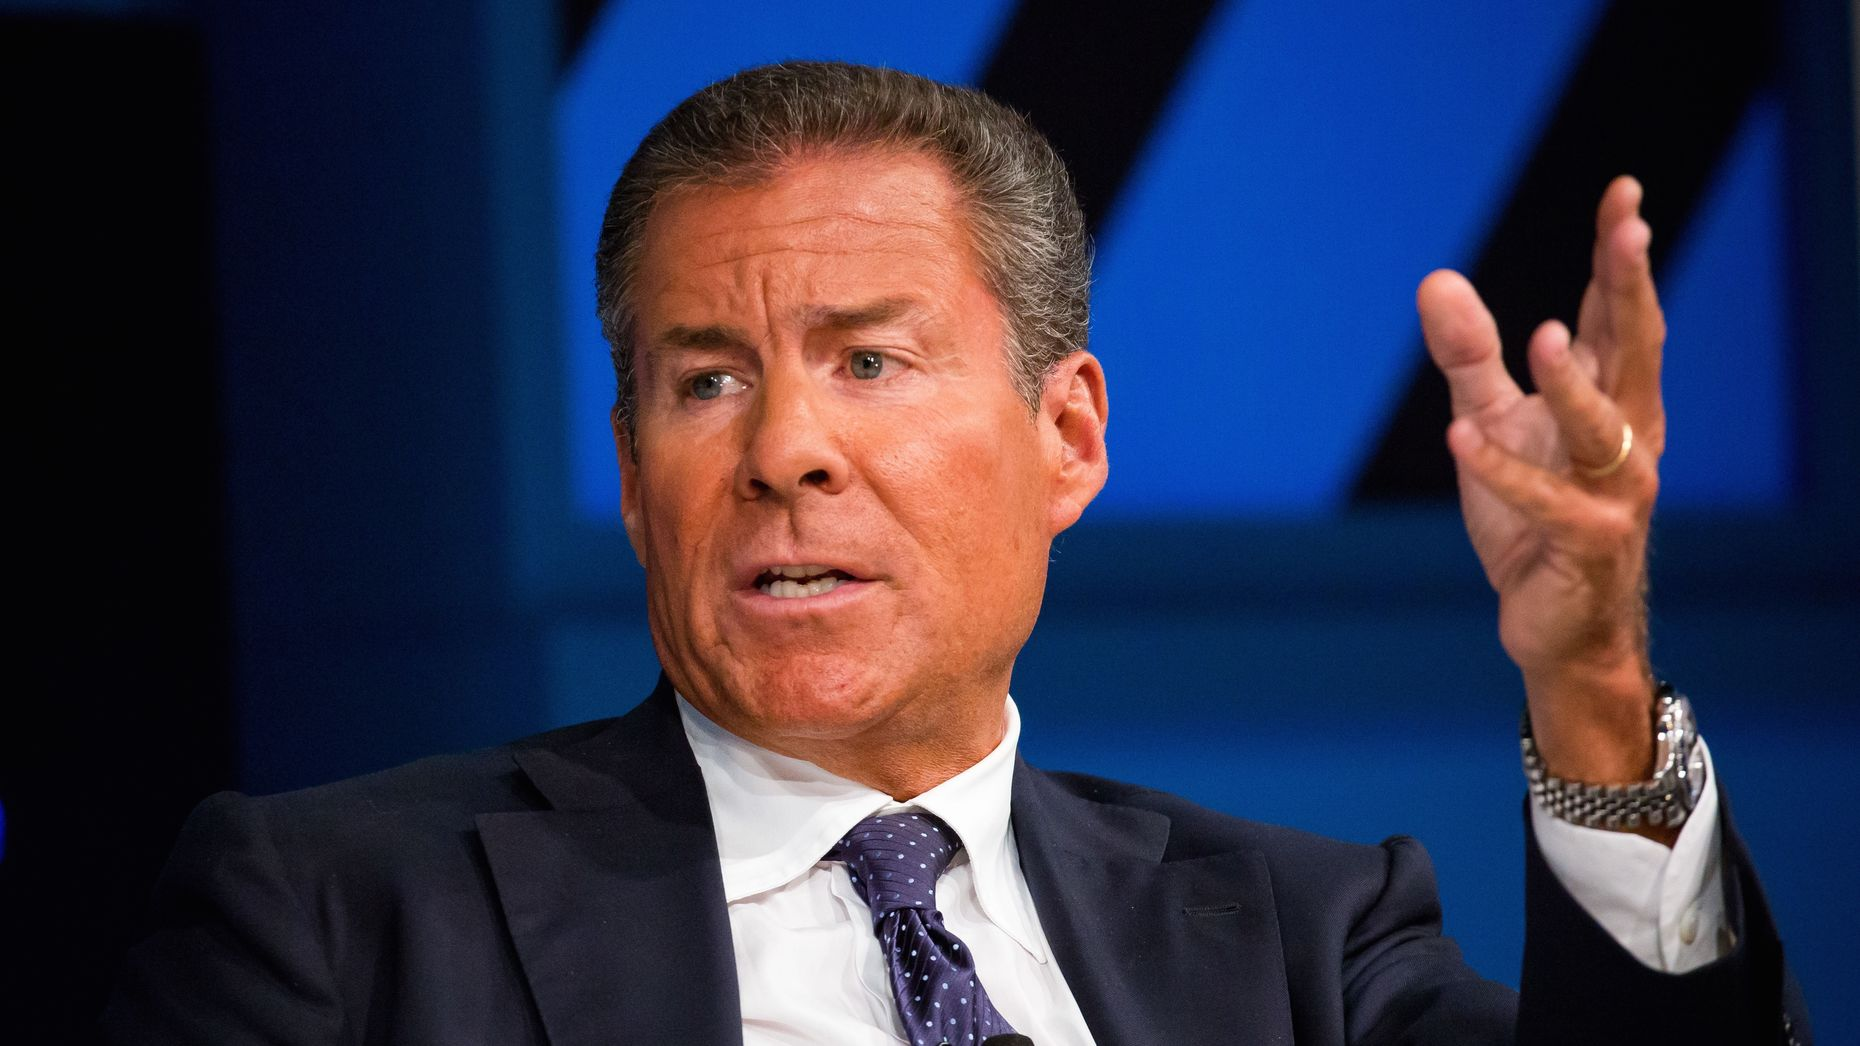 HBO CEO Richard Plepler. Photo by Bloomberg.